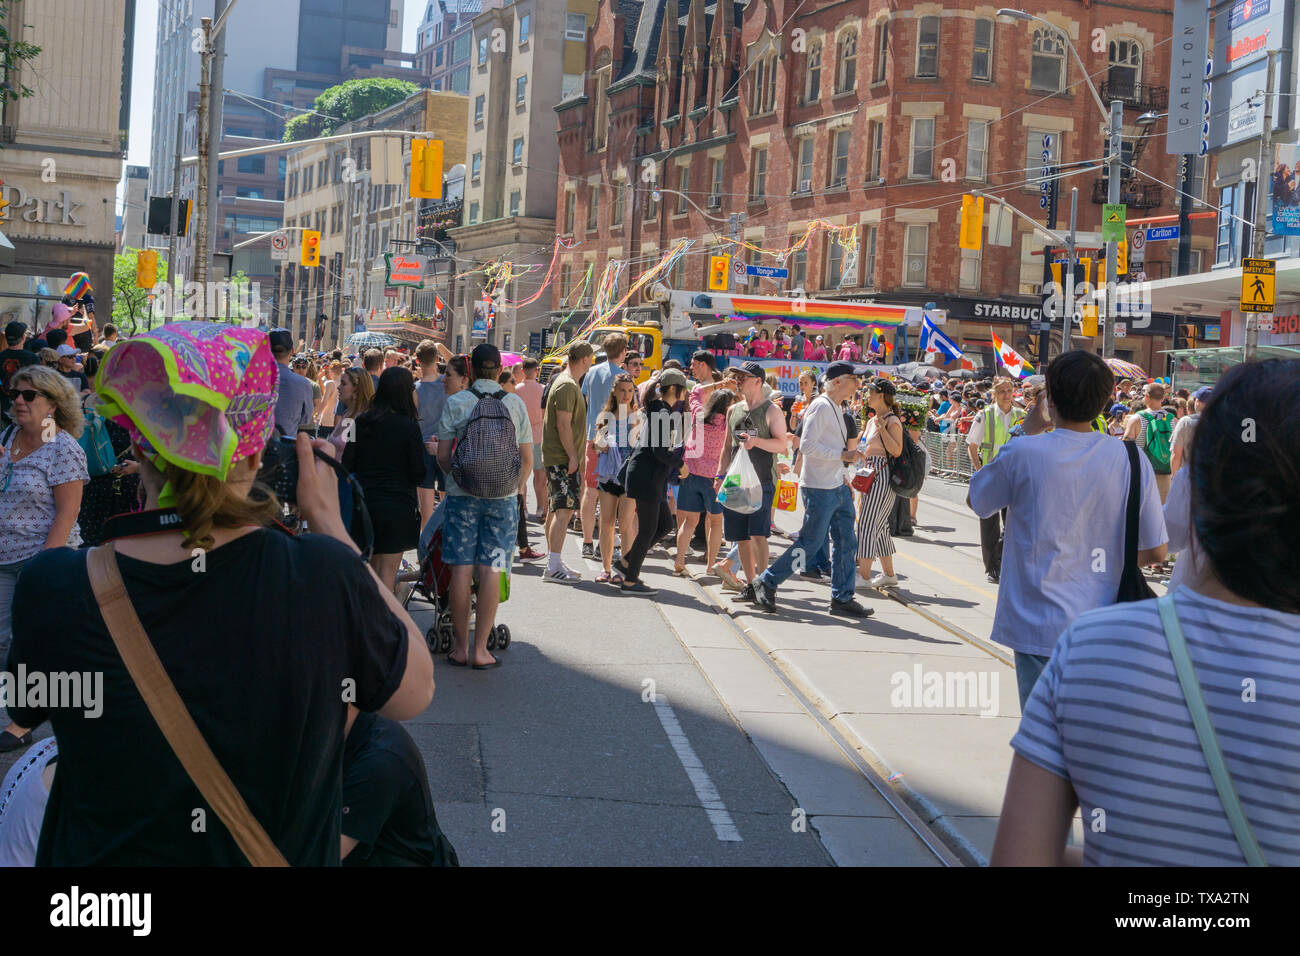 So many people, so much love. What a beautiful and important event for everyone Pride is. I am proud to be Canadian! - Stock Image